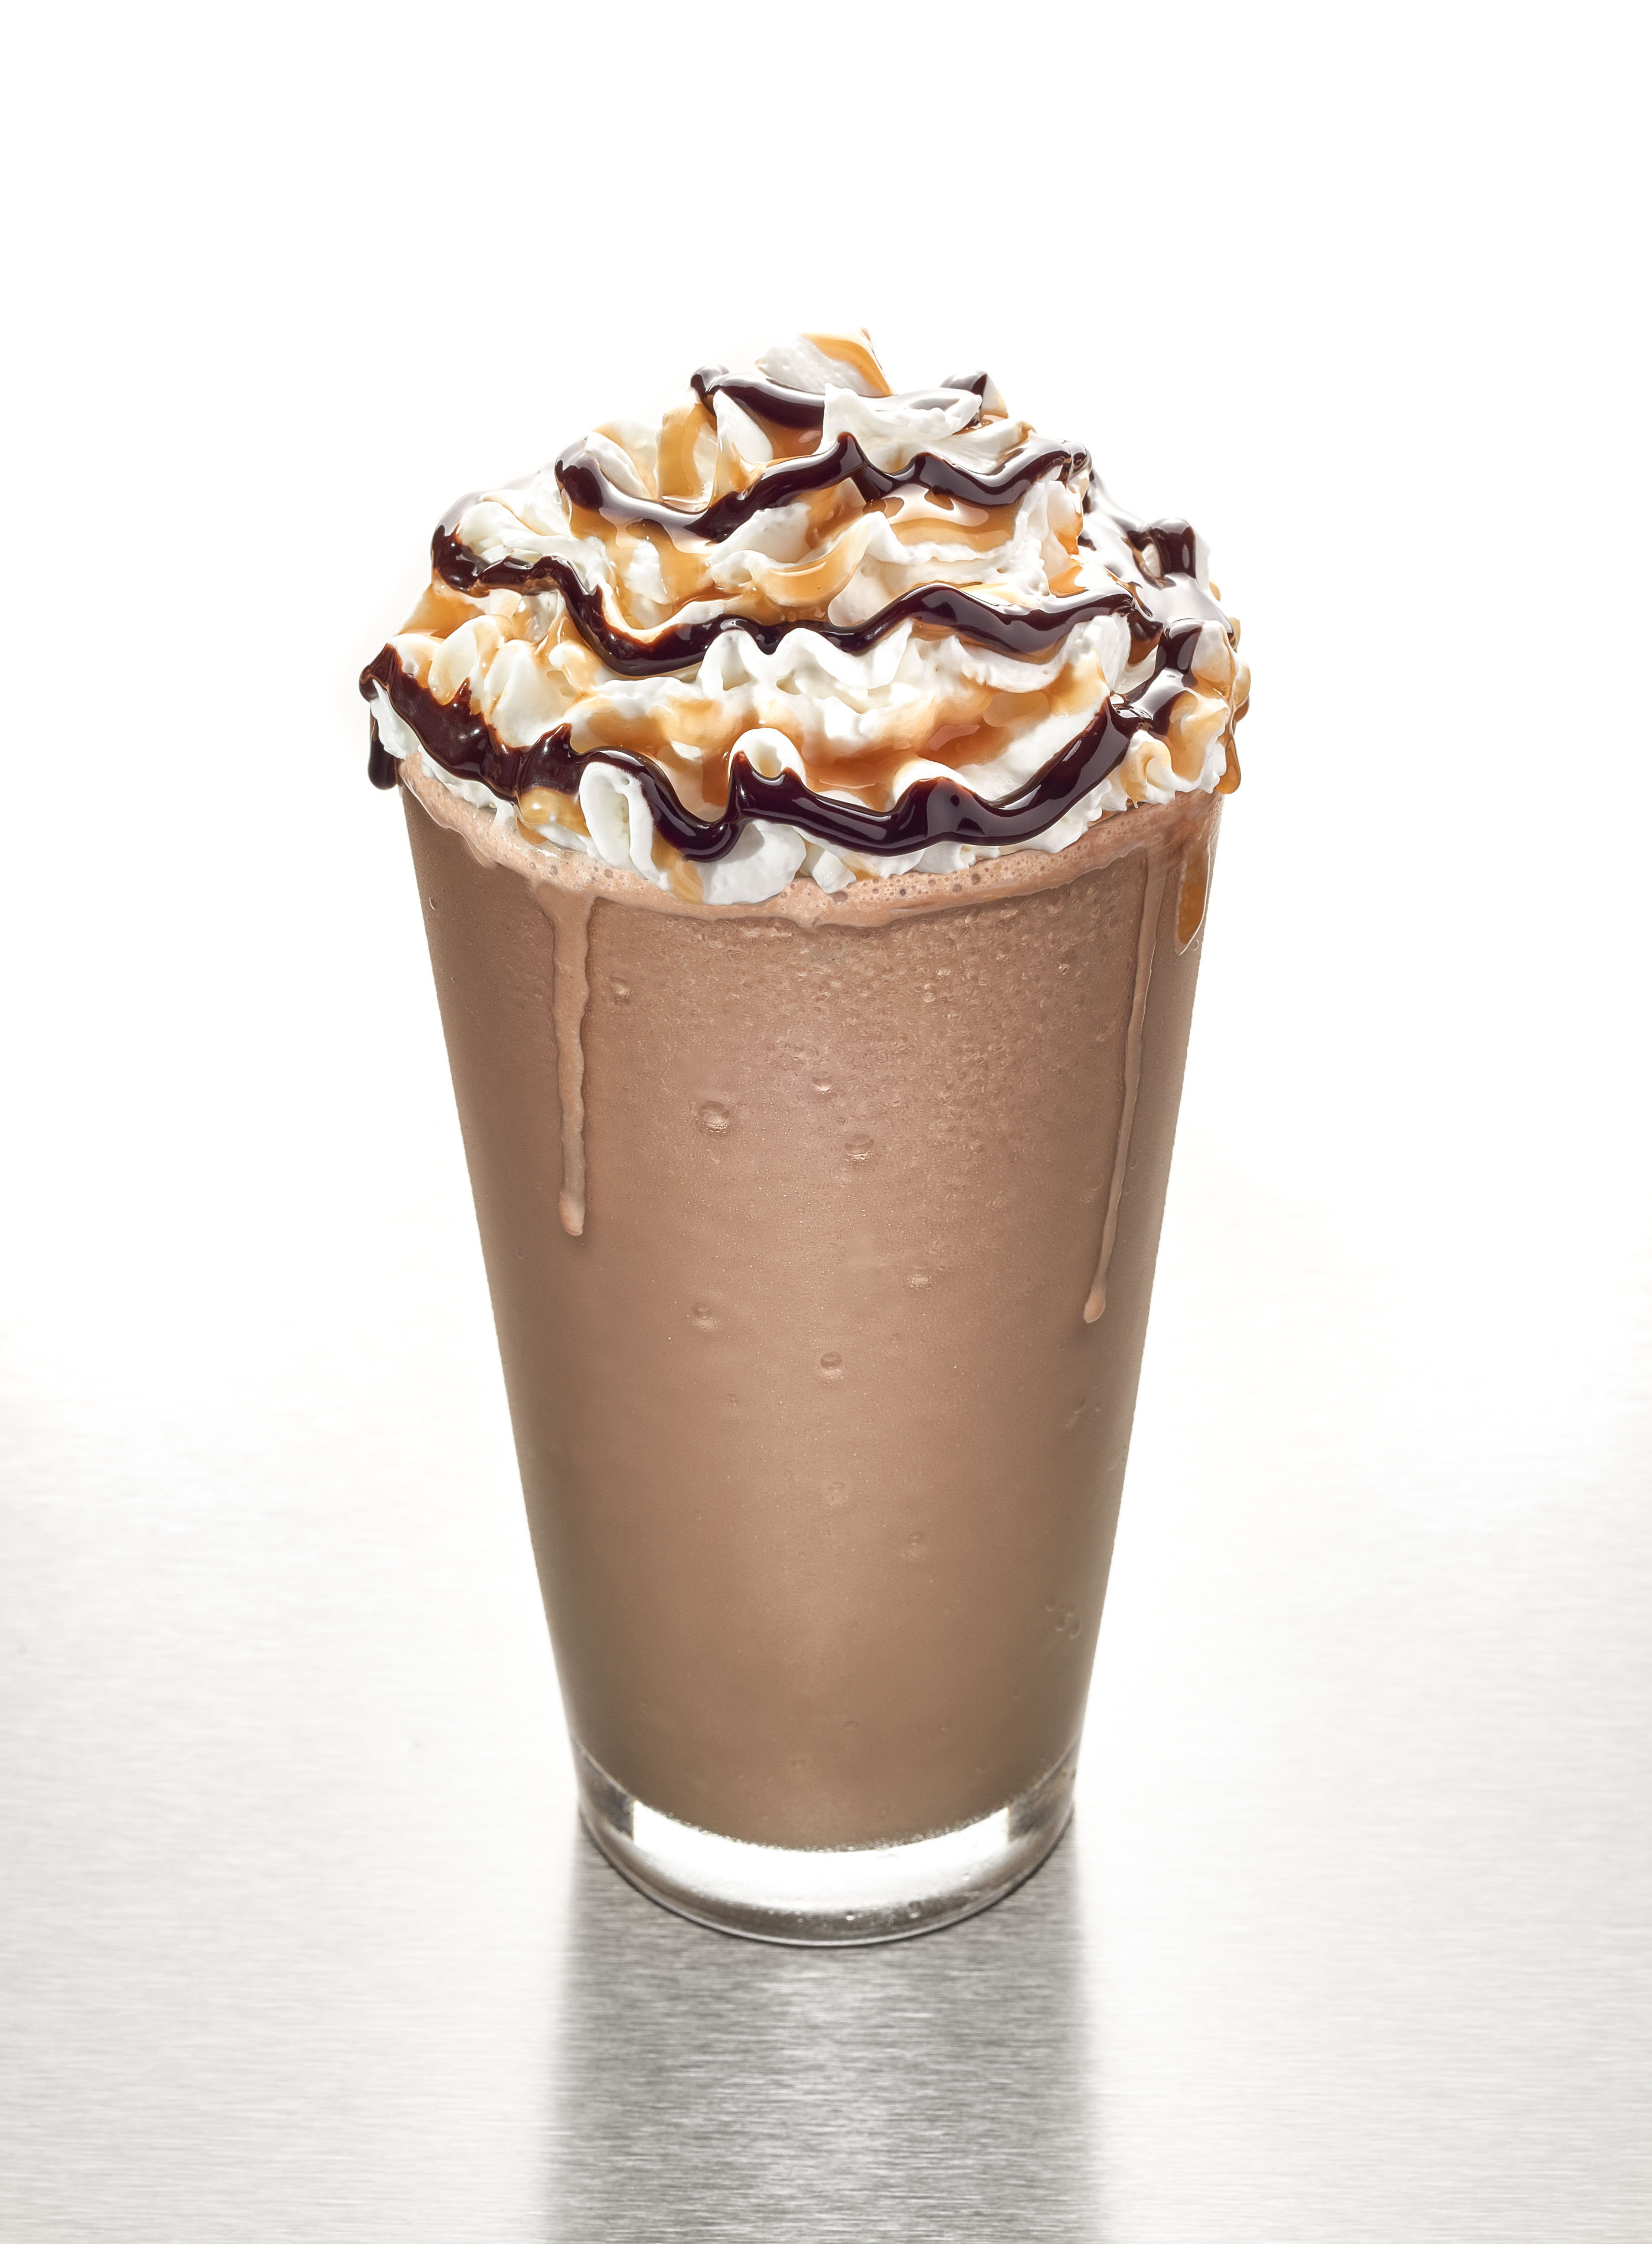 Milkshake | Steve Hansen food photography Seattle